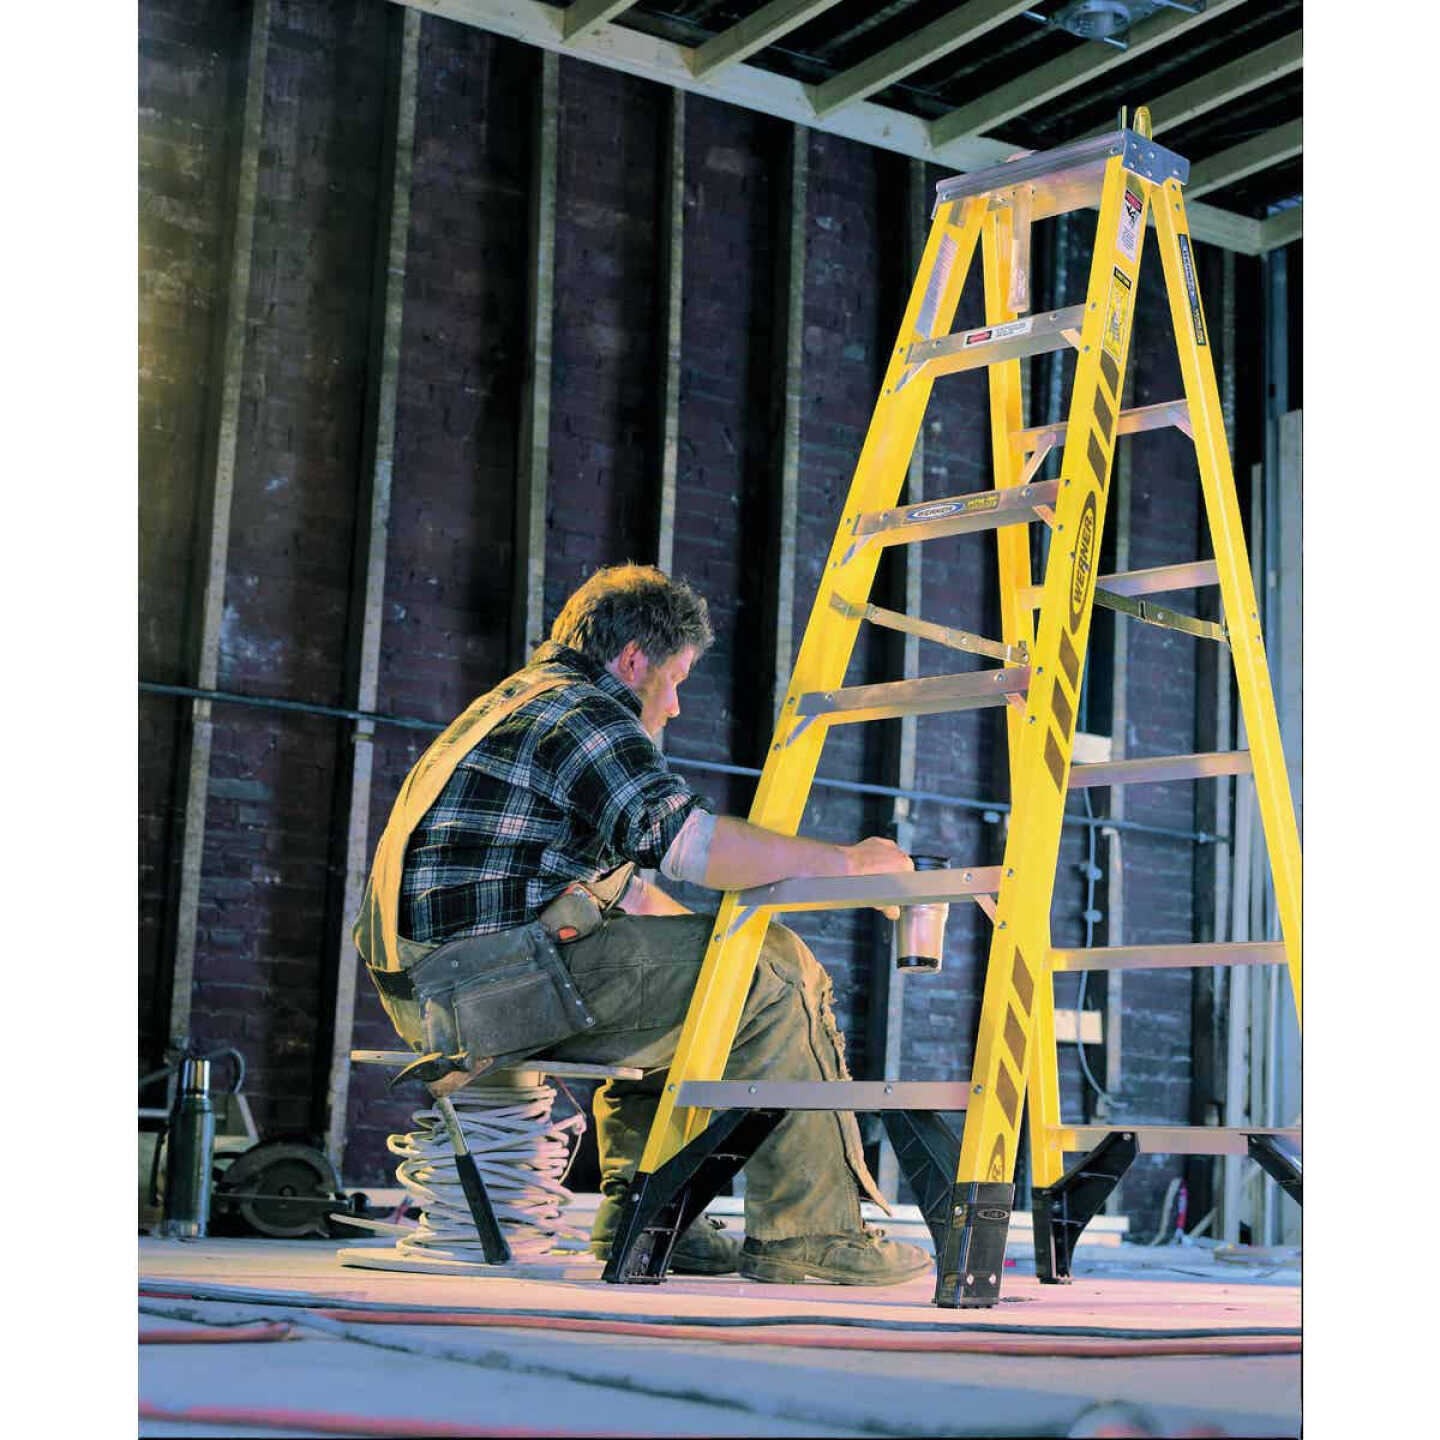 Werner 6 Ft. Fiberglass Step Ladder with 375 Lb. Load Capacity Type IAA Ladder Rating Image 2